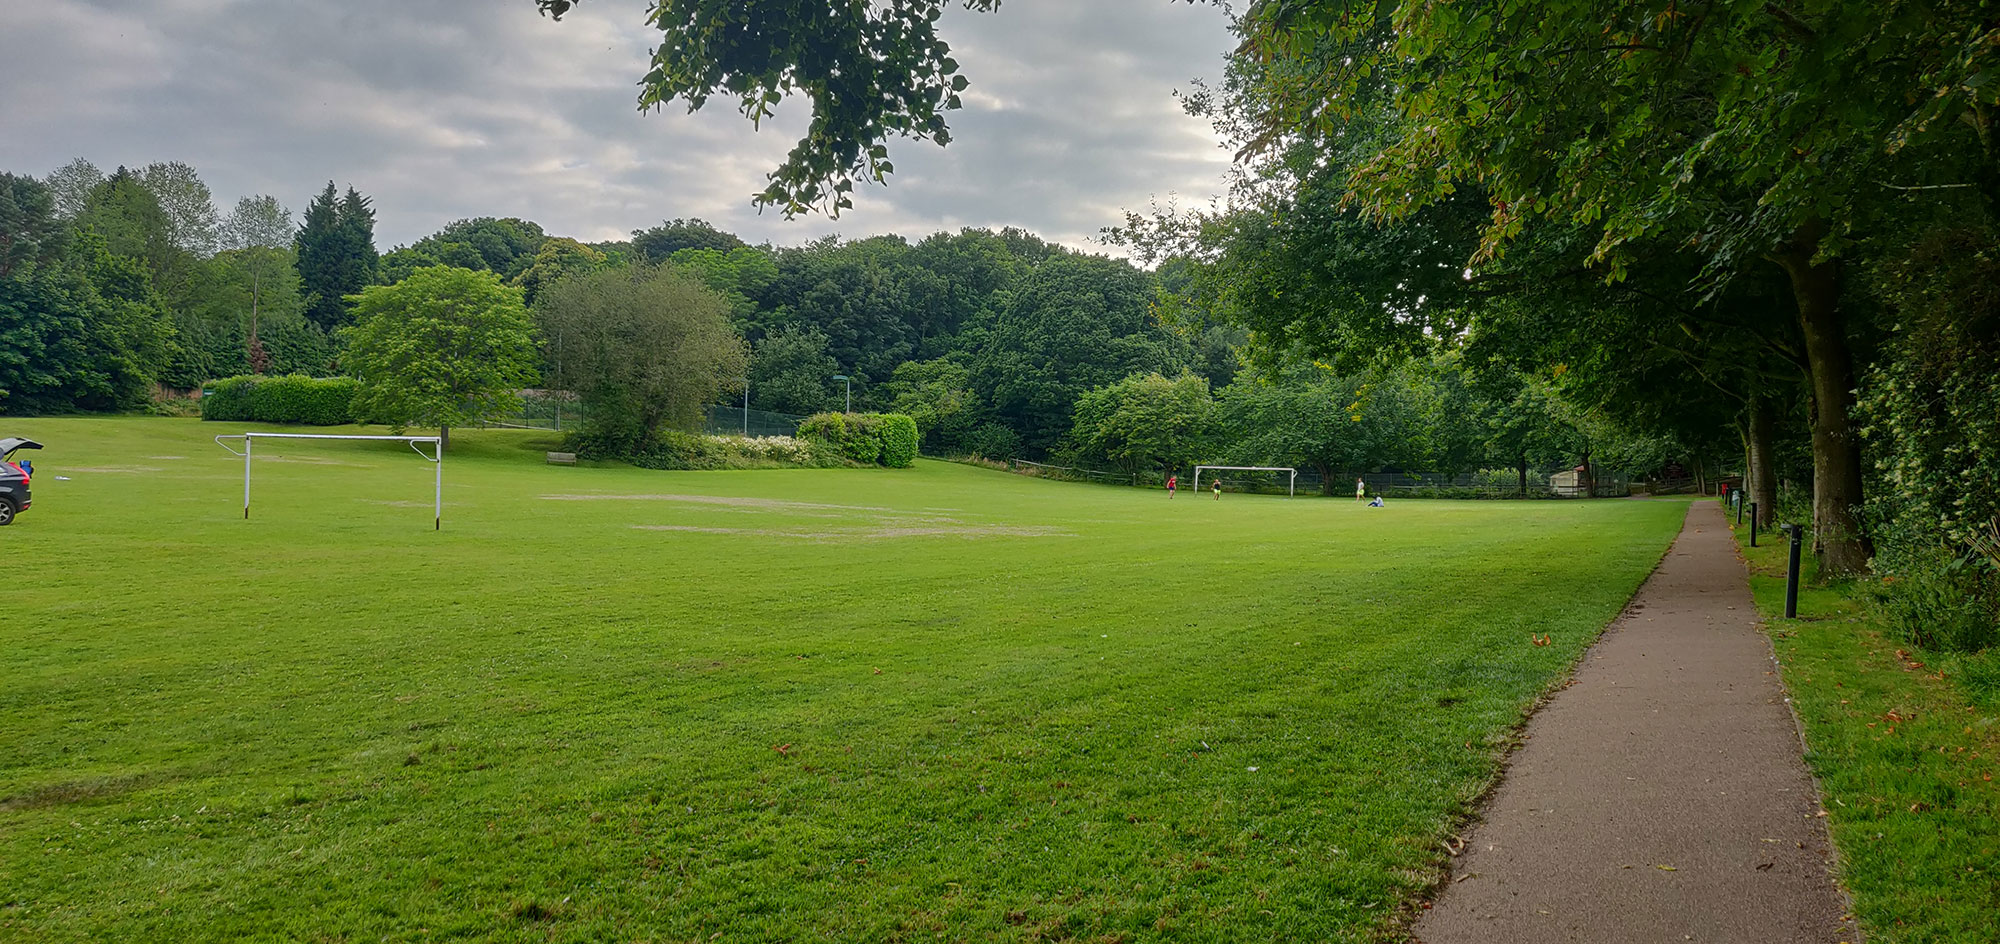 Ightham recreation ground football pitch